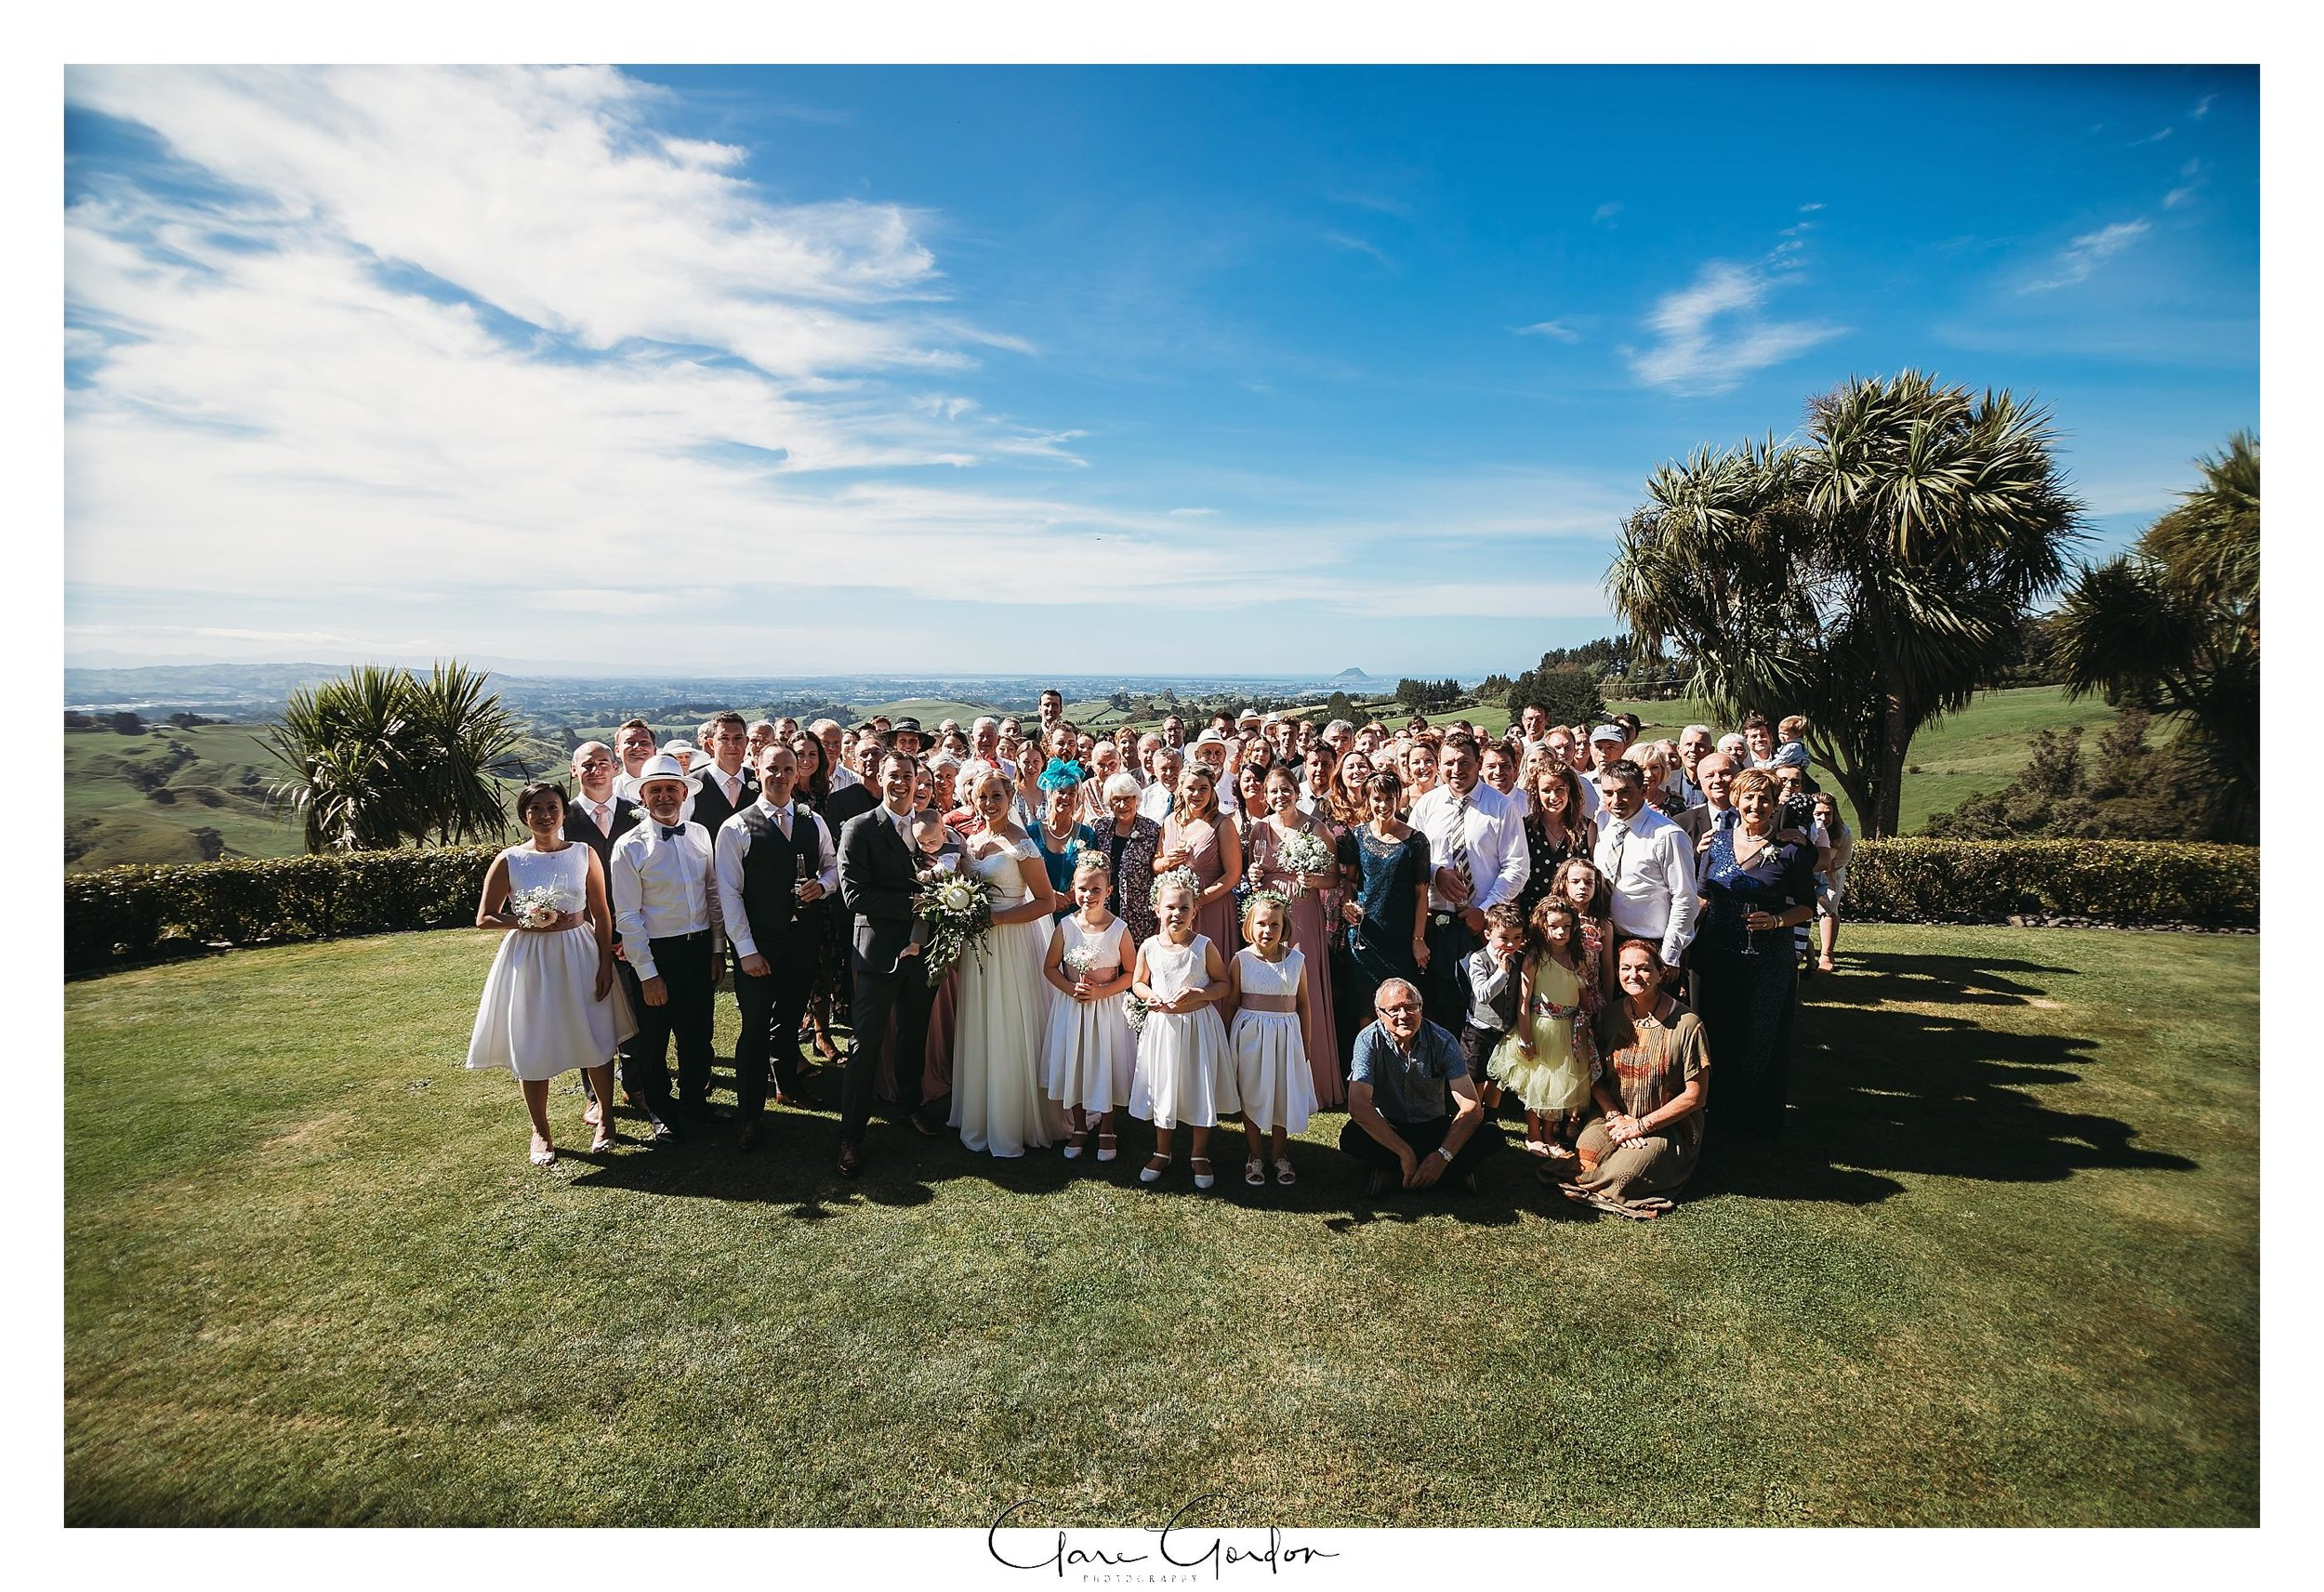 Eagle-Ridge-wedding-photo-Tauranga (119).jpg